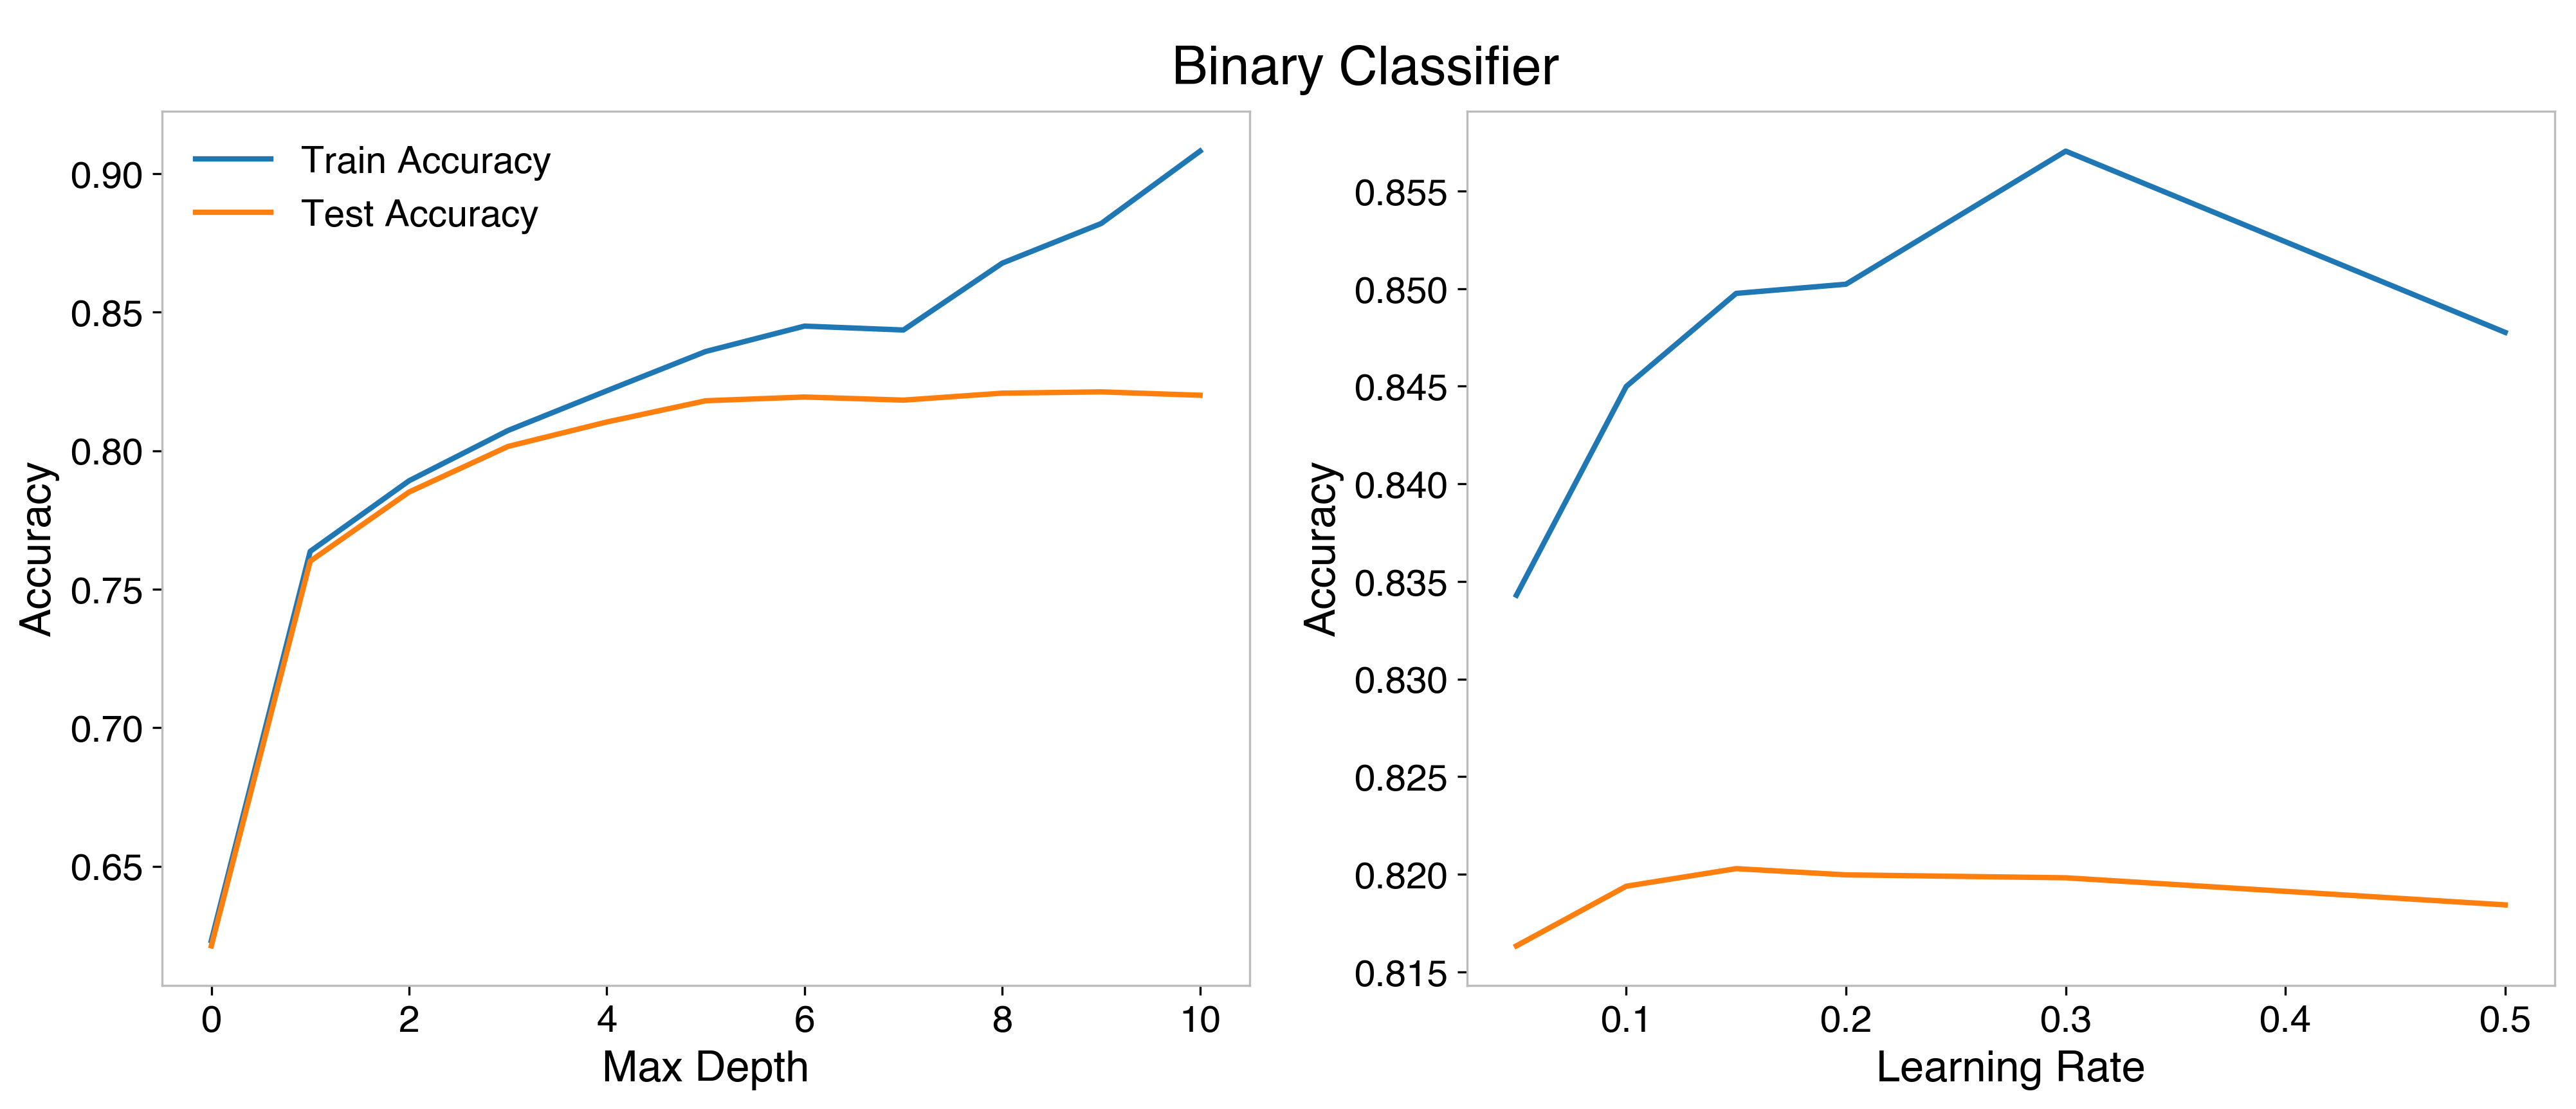 HP optimization for the binary classifier